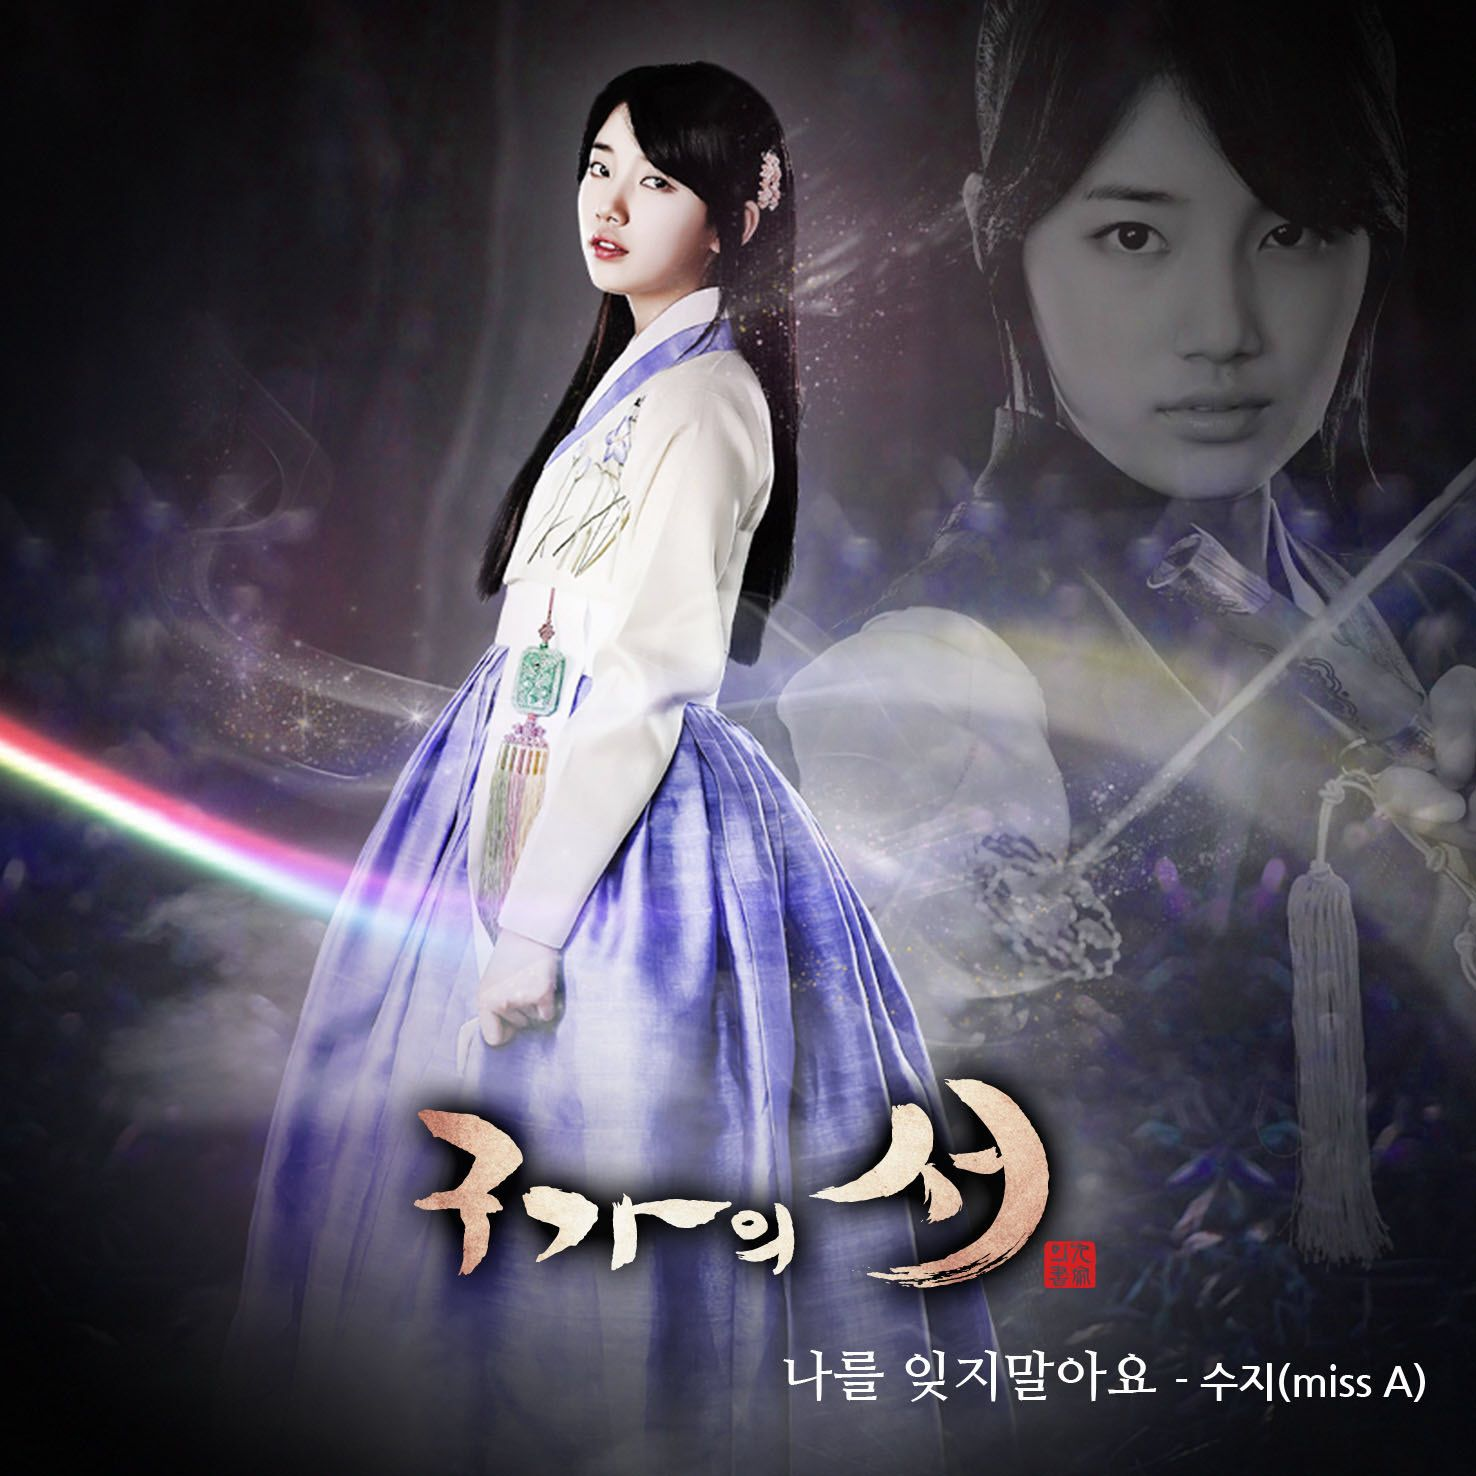 [Single] Suzy (Miss A) - Gu Family Book OST Part. 4